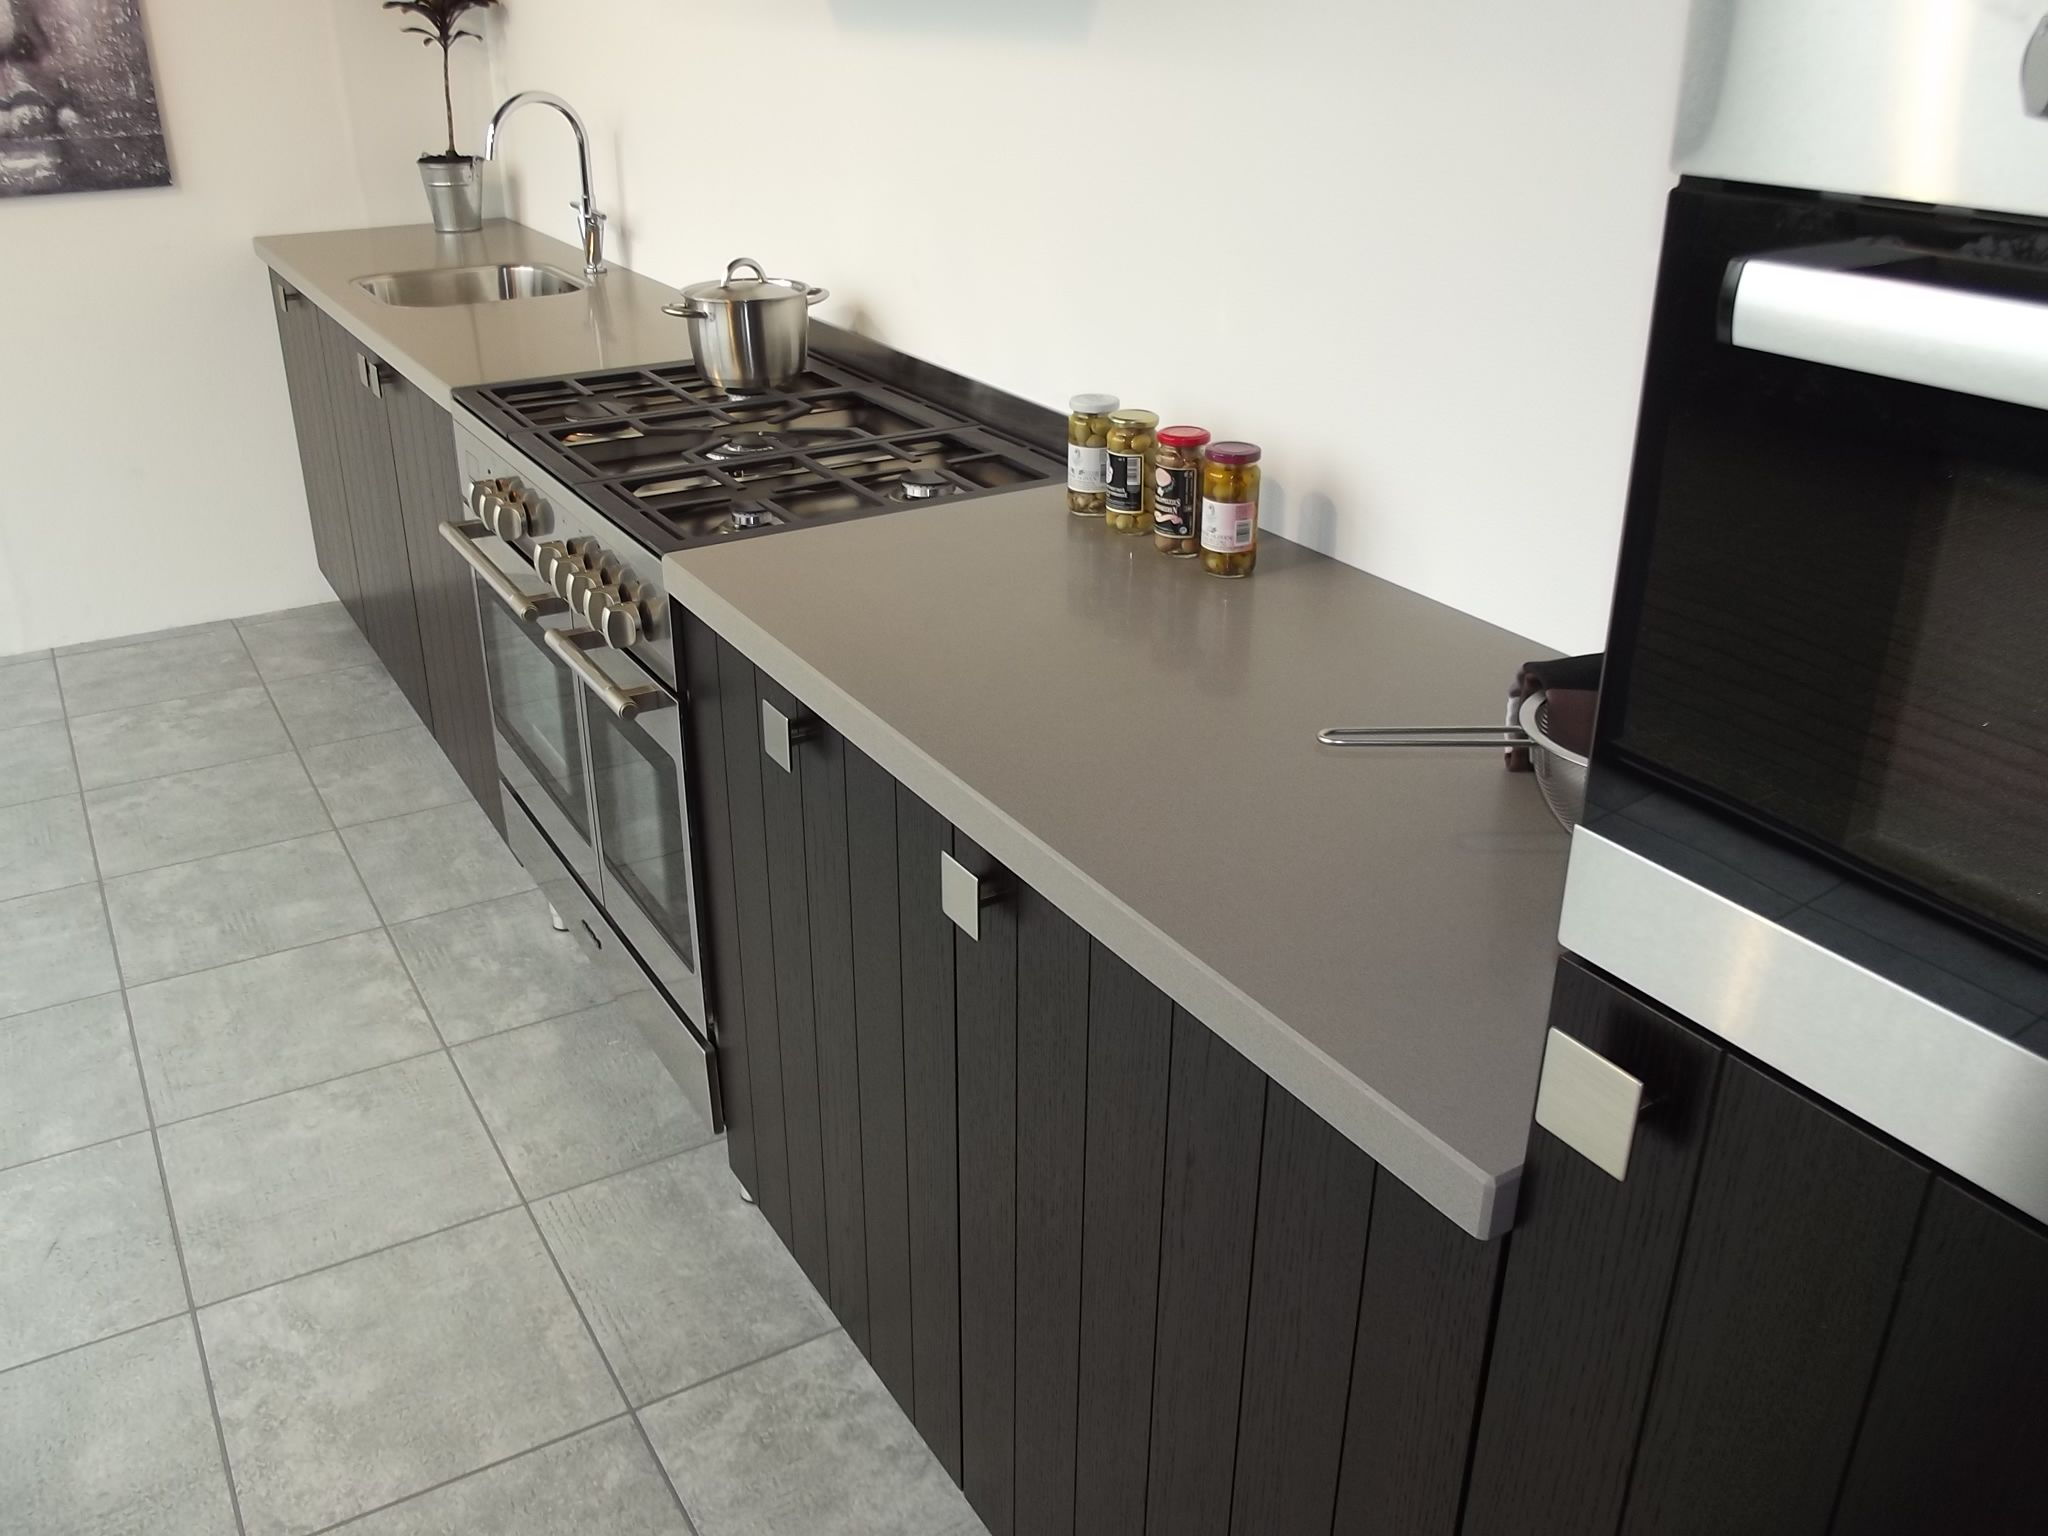 Betonlook Blad Keuken Kitchen Ideas On Pinterest Vans Showroom And De Stijl